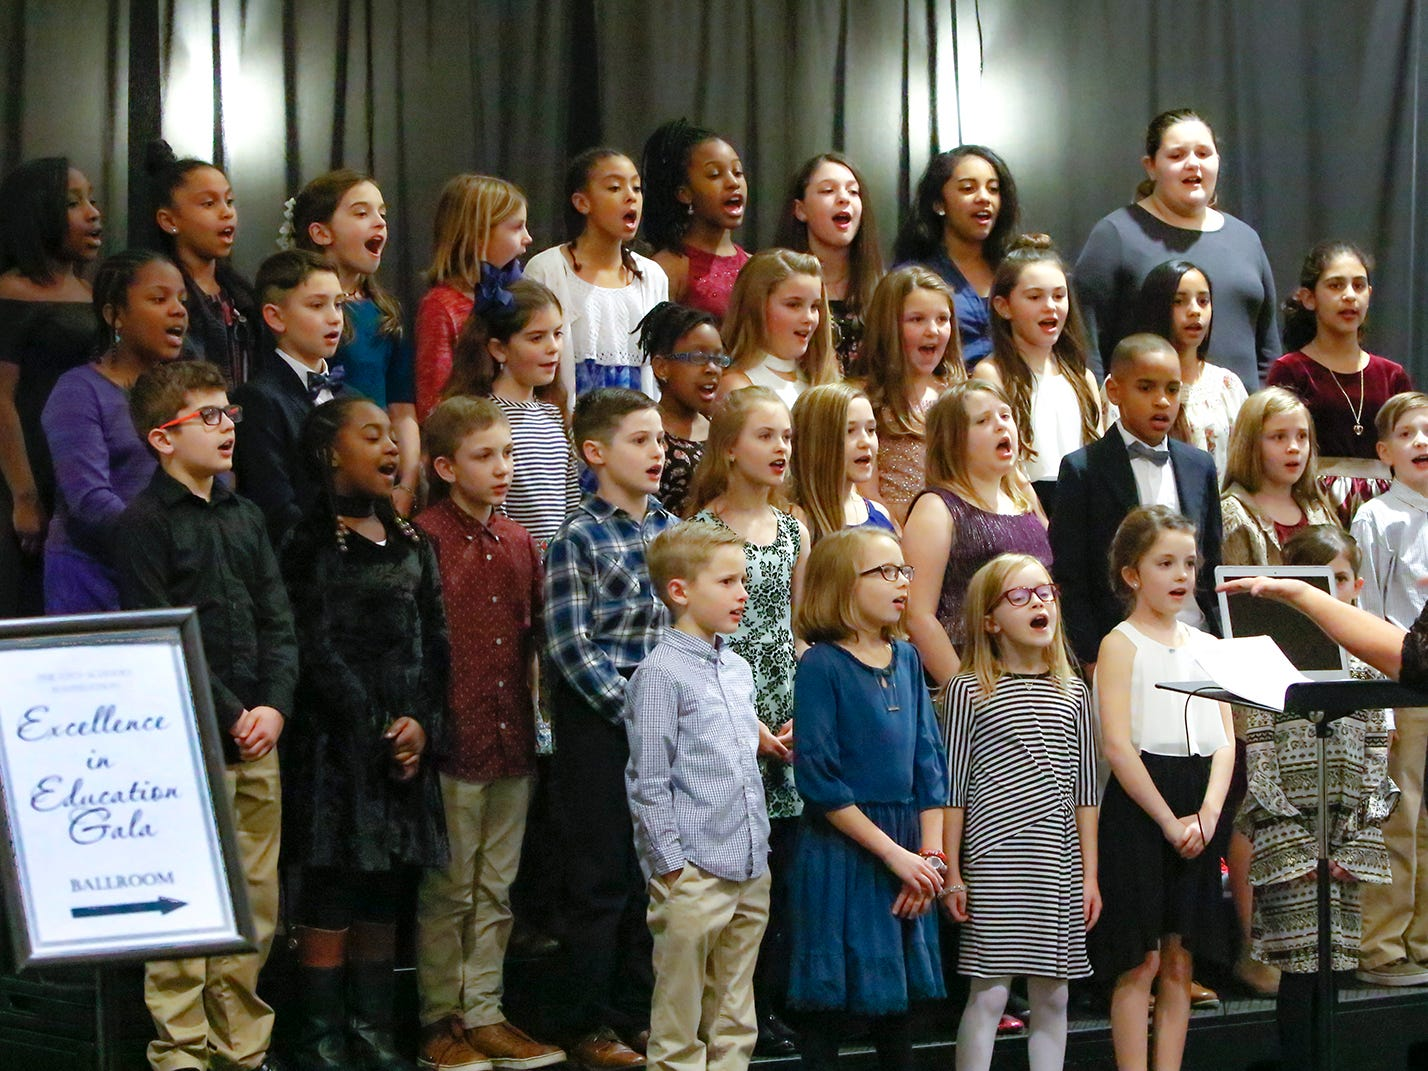 Overall Creek Elementary was the featured school at the 2019 Excellence in Education Gala, hosted by the City Schools Foundation. The event was held Friday, Jan. 25, 2019 at Stones River Country Club in Murfreesboro. Dacari Middlebooks was the featured speaker.